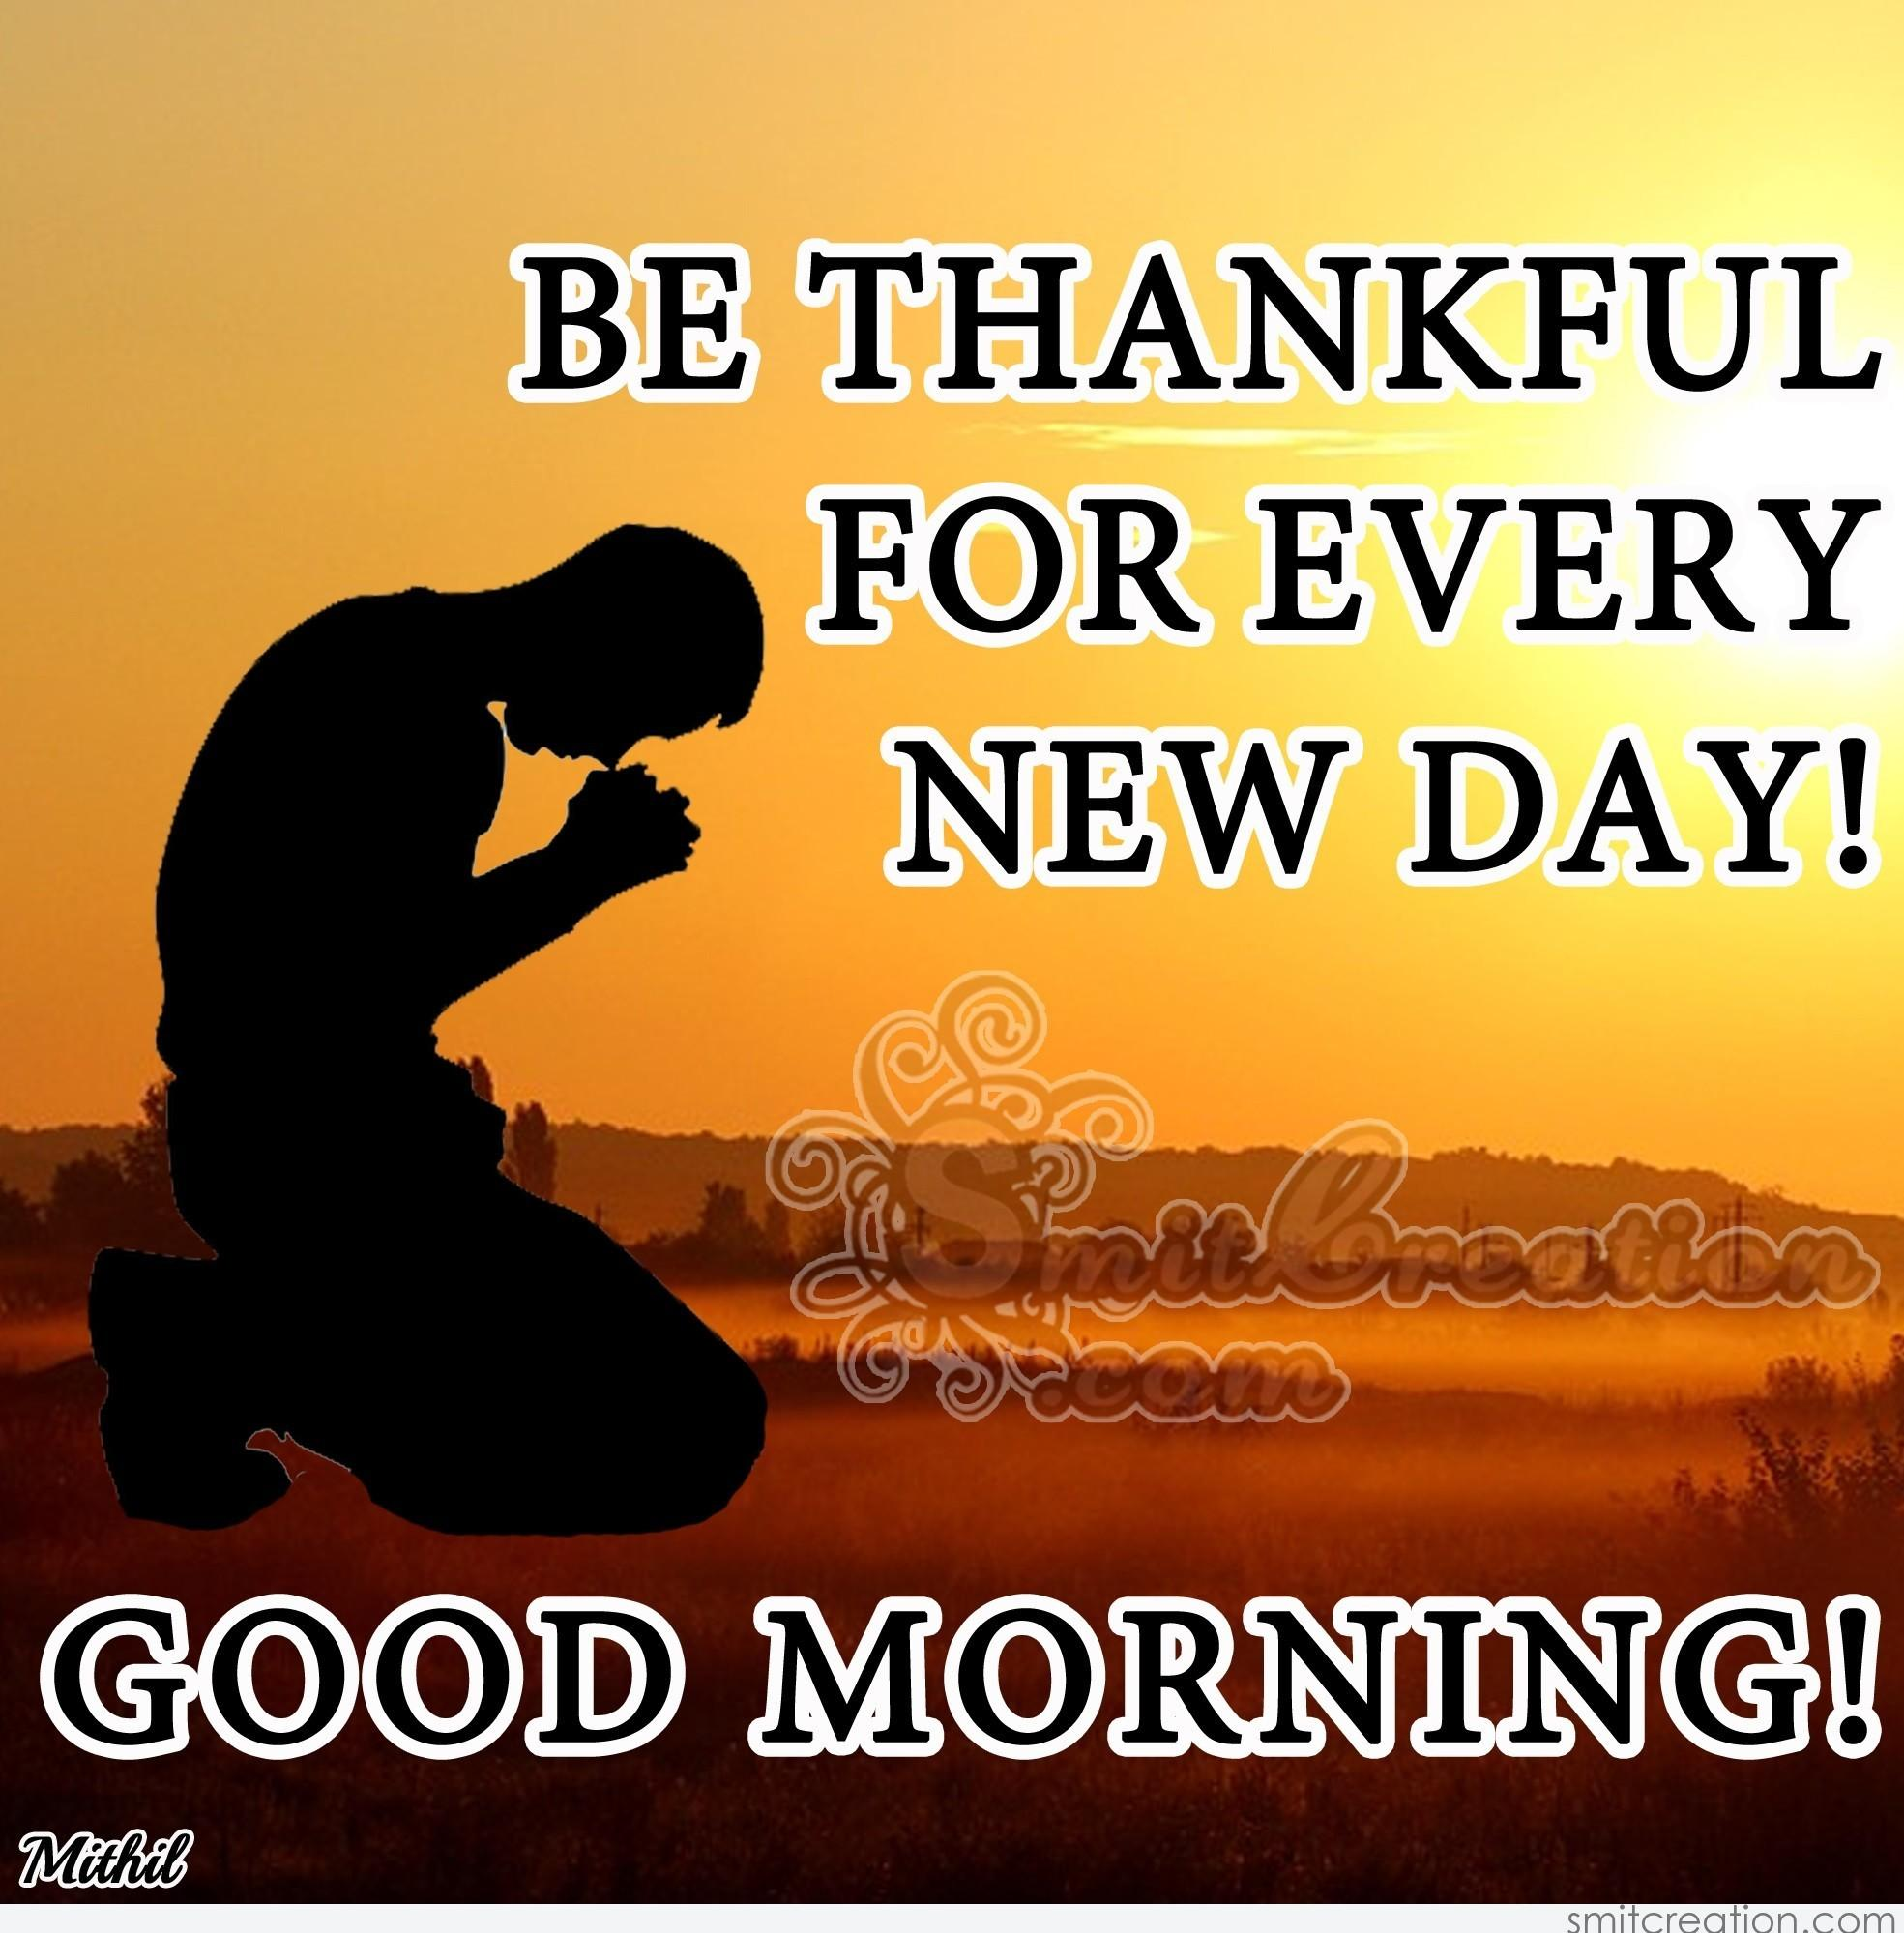 Good Morning Be Thankful For Every New Day Smitcreation Com